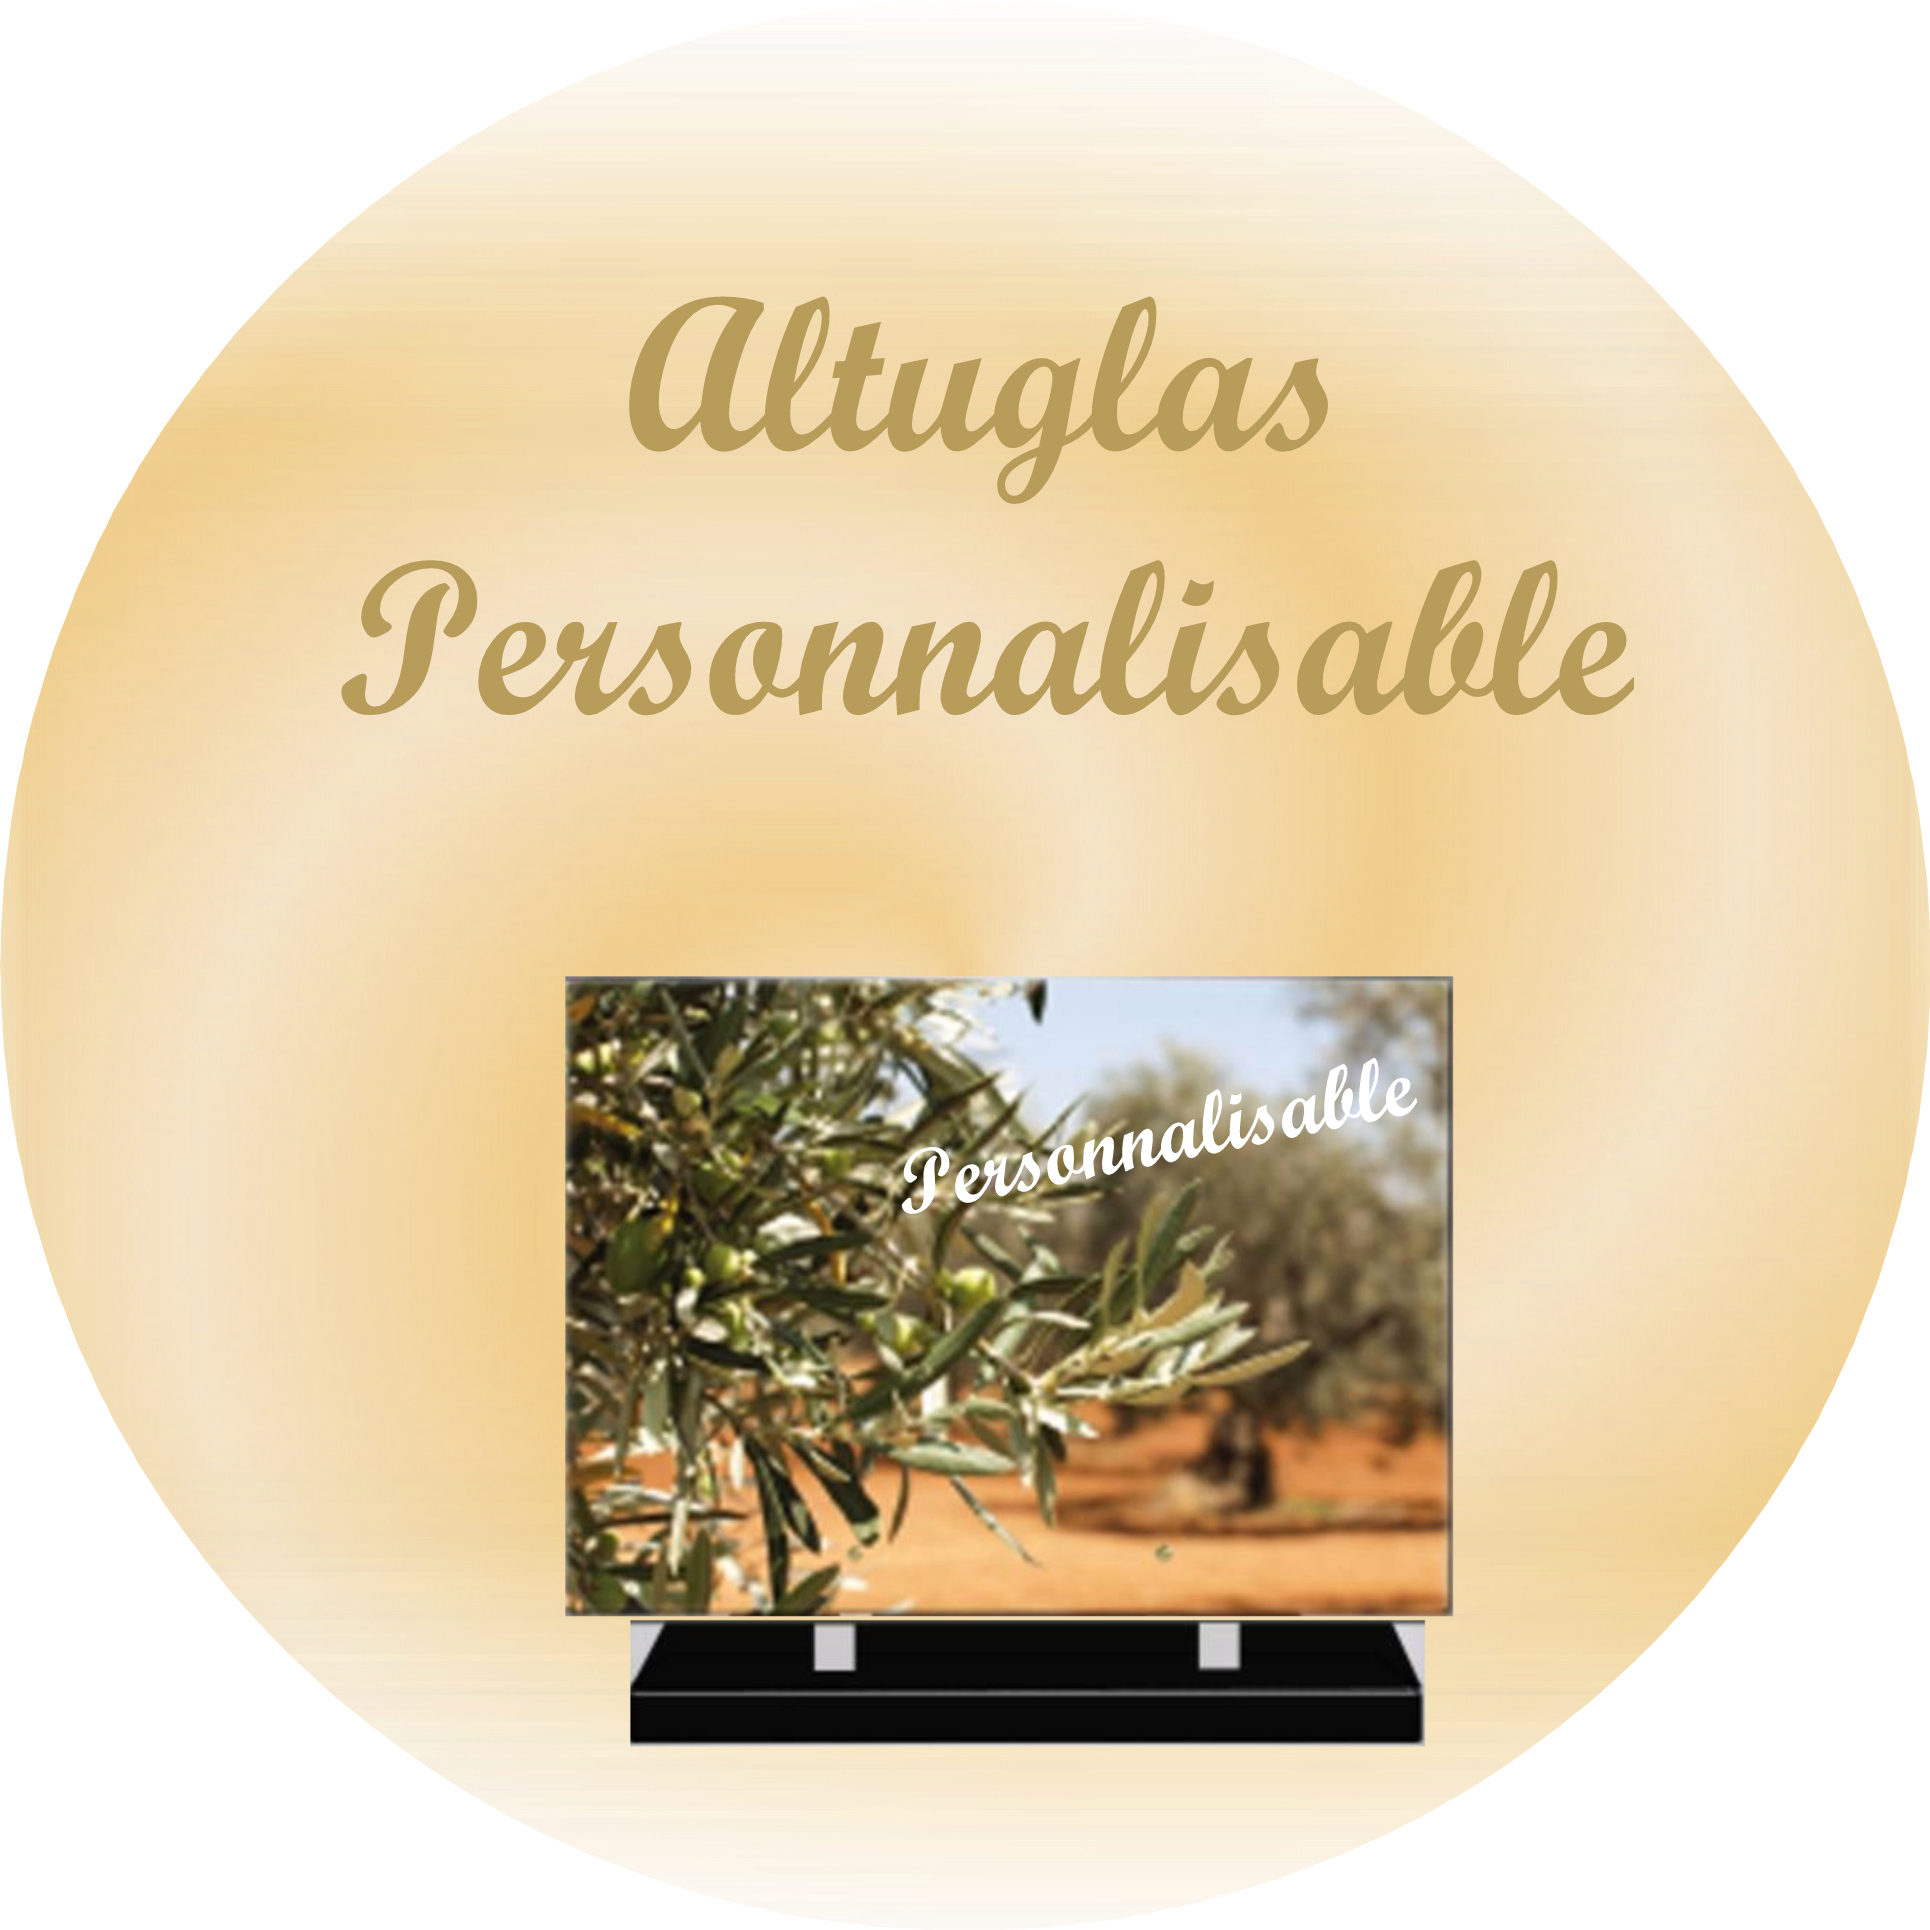 PLAQUES FUNERAIRES MODERNES PERSONNALISABLES RECTANGLE SENTILLY